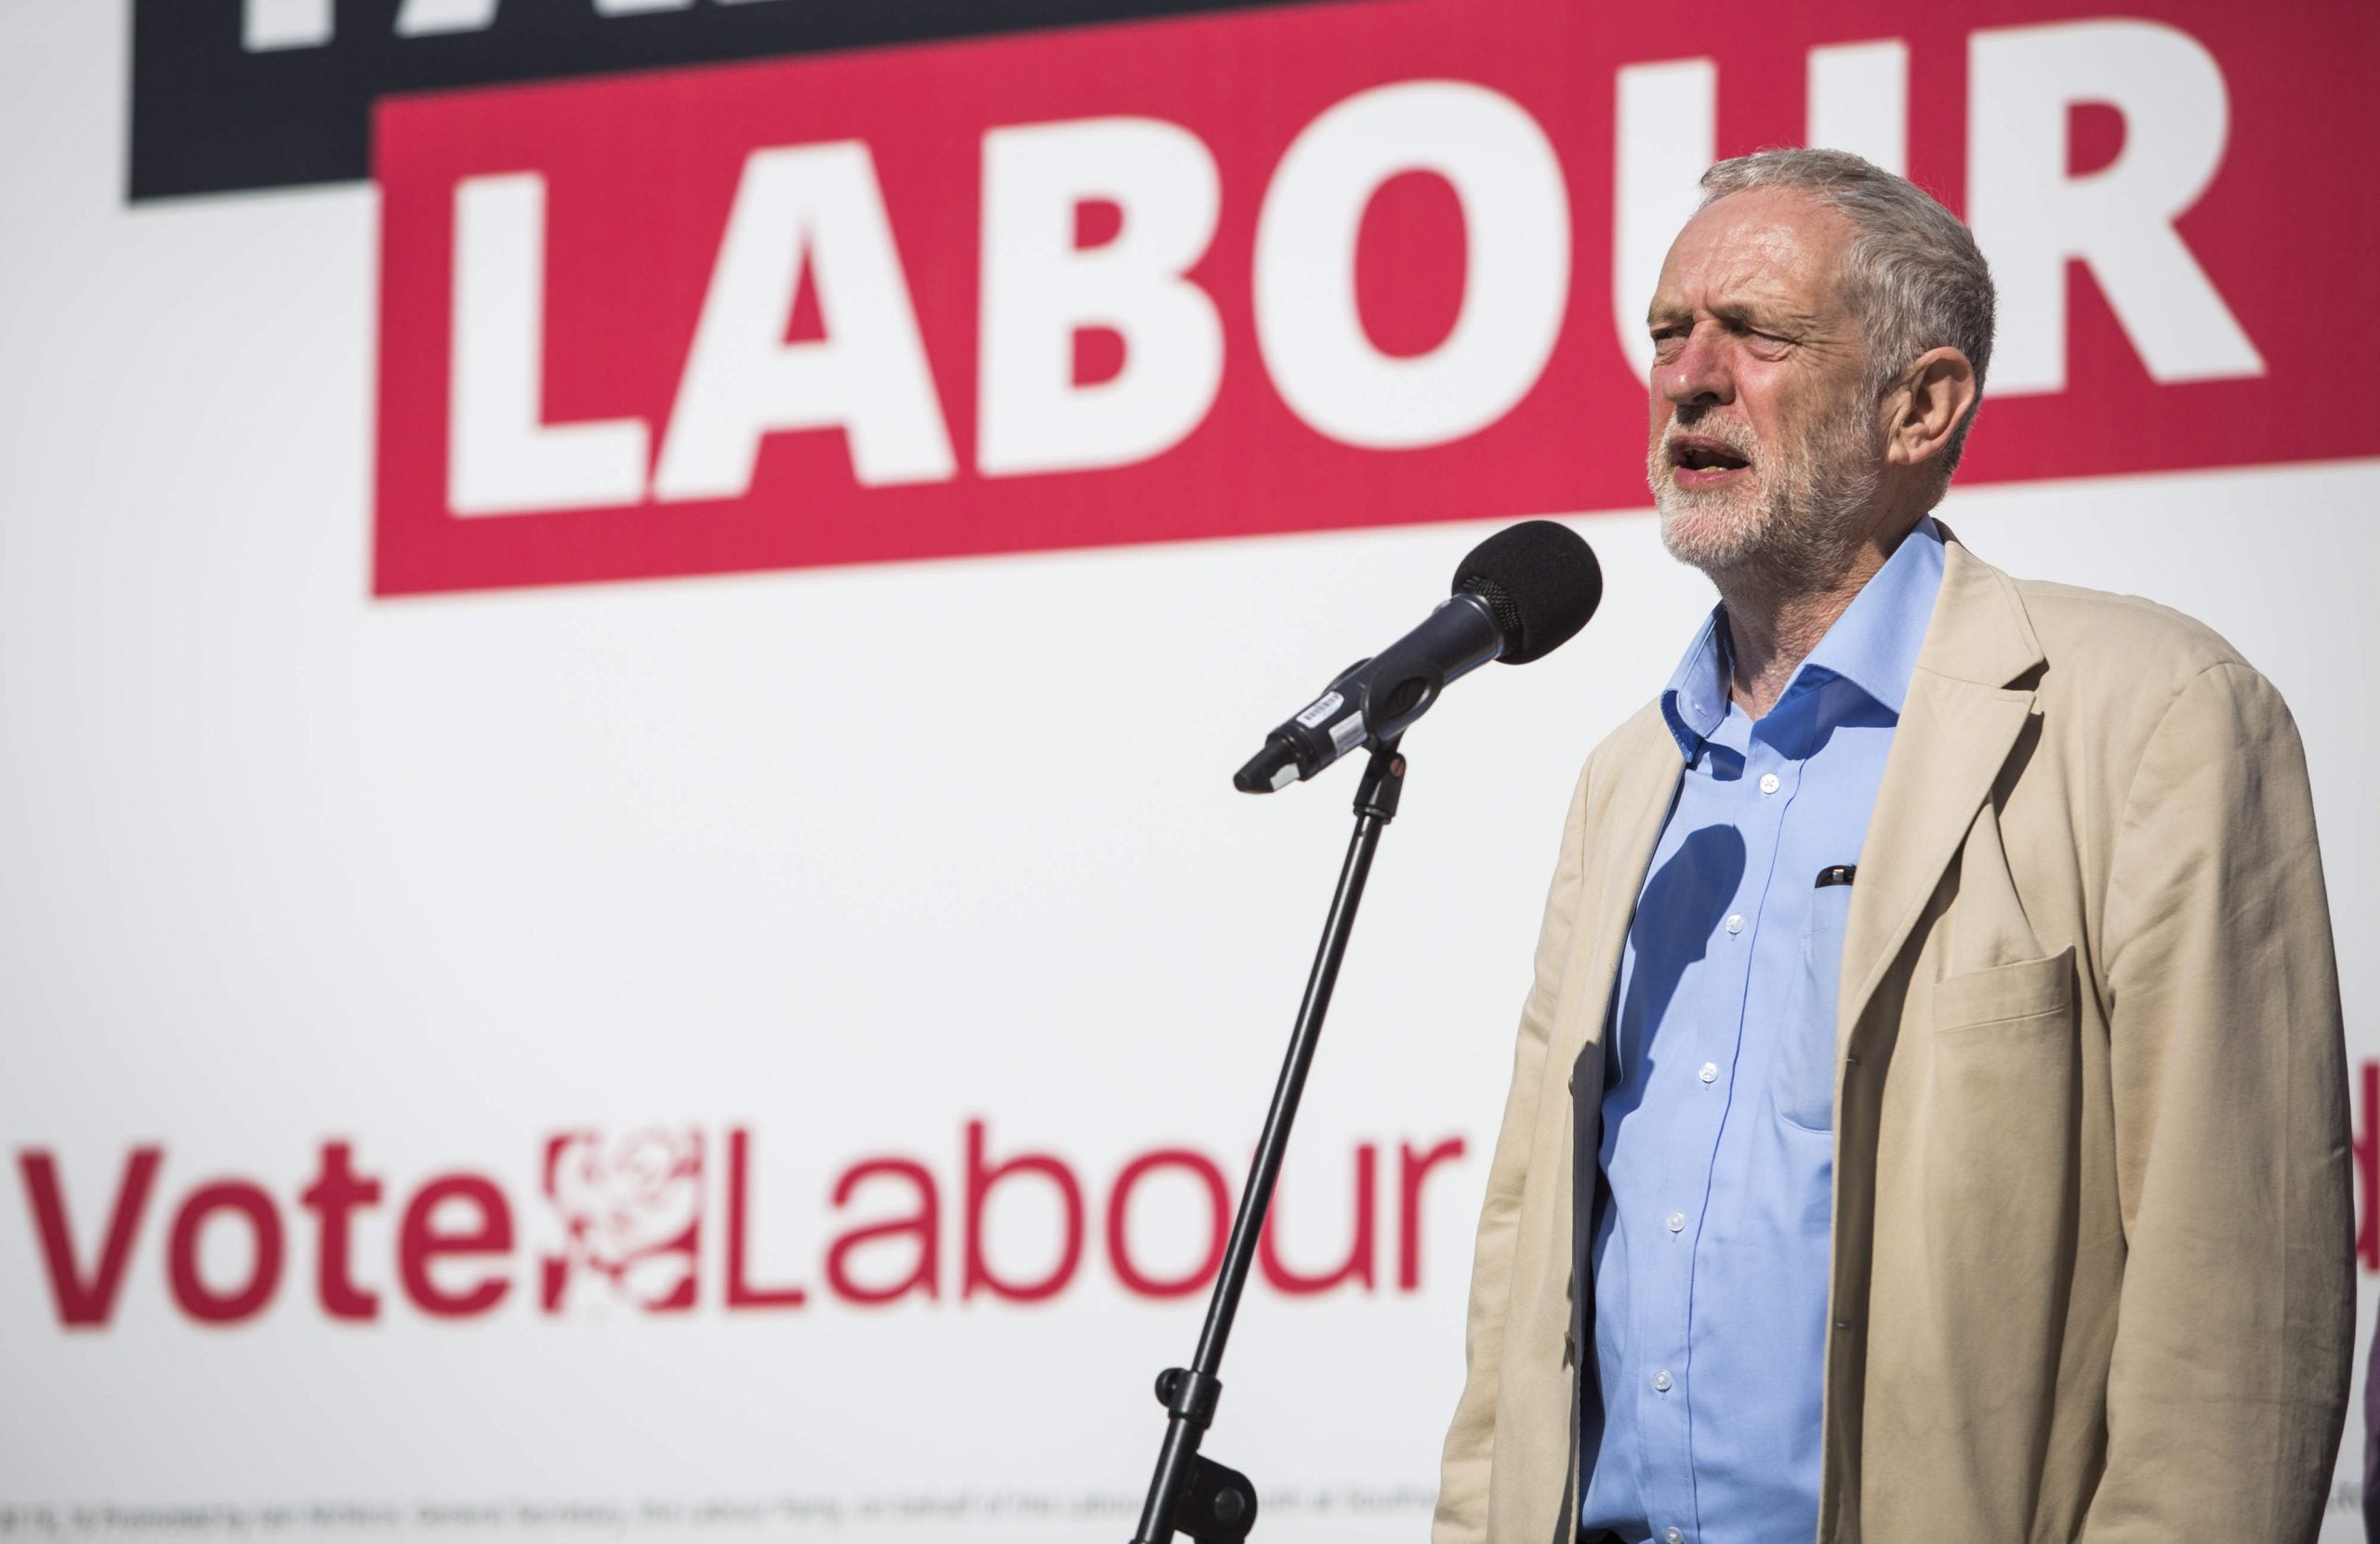 As long as Jeremy Corbyn's Labour opponents are divided, he will rule